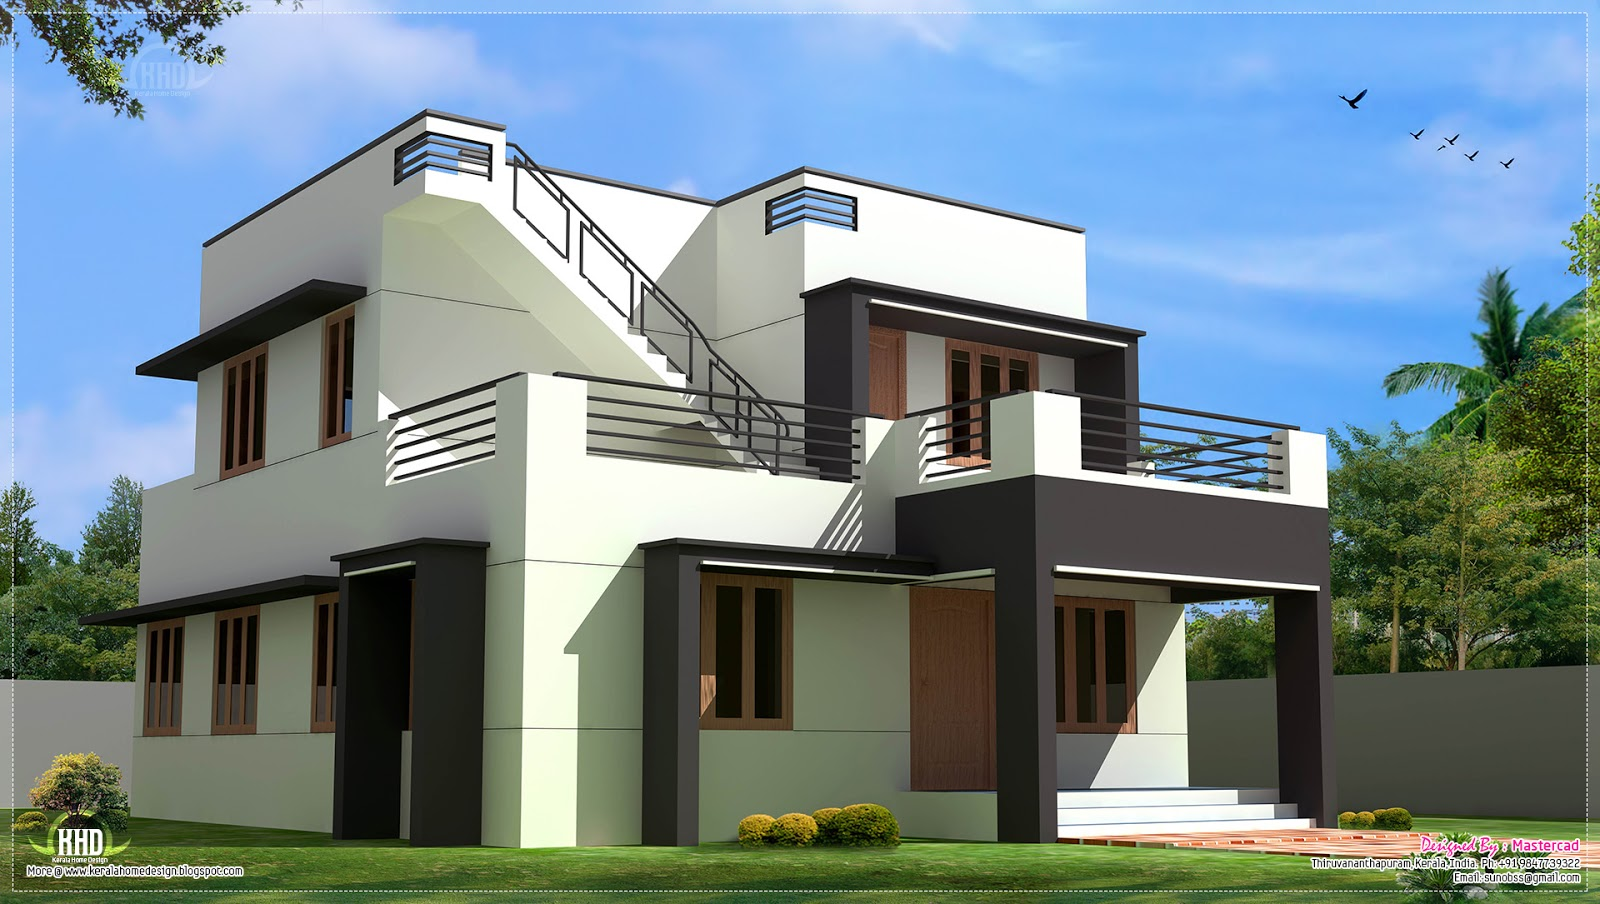 Modern house design in 1700 kerala home design for Square home plans